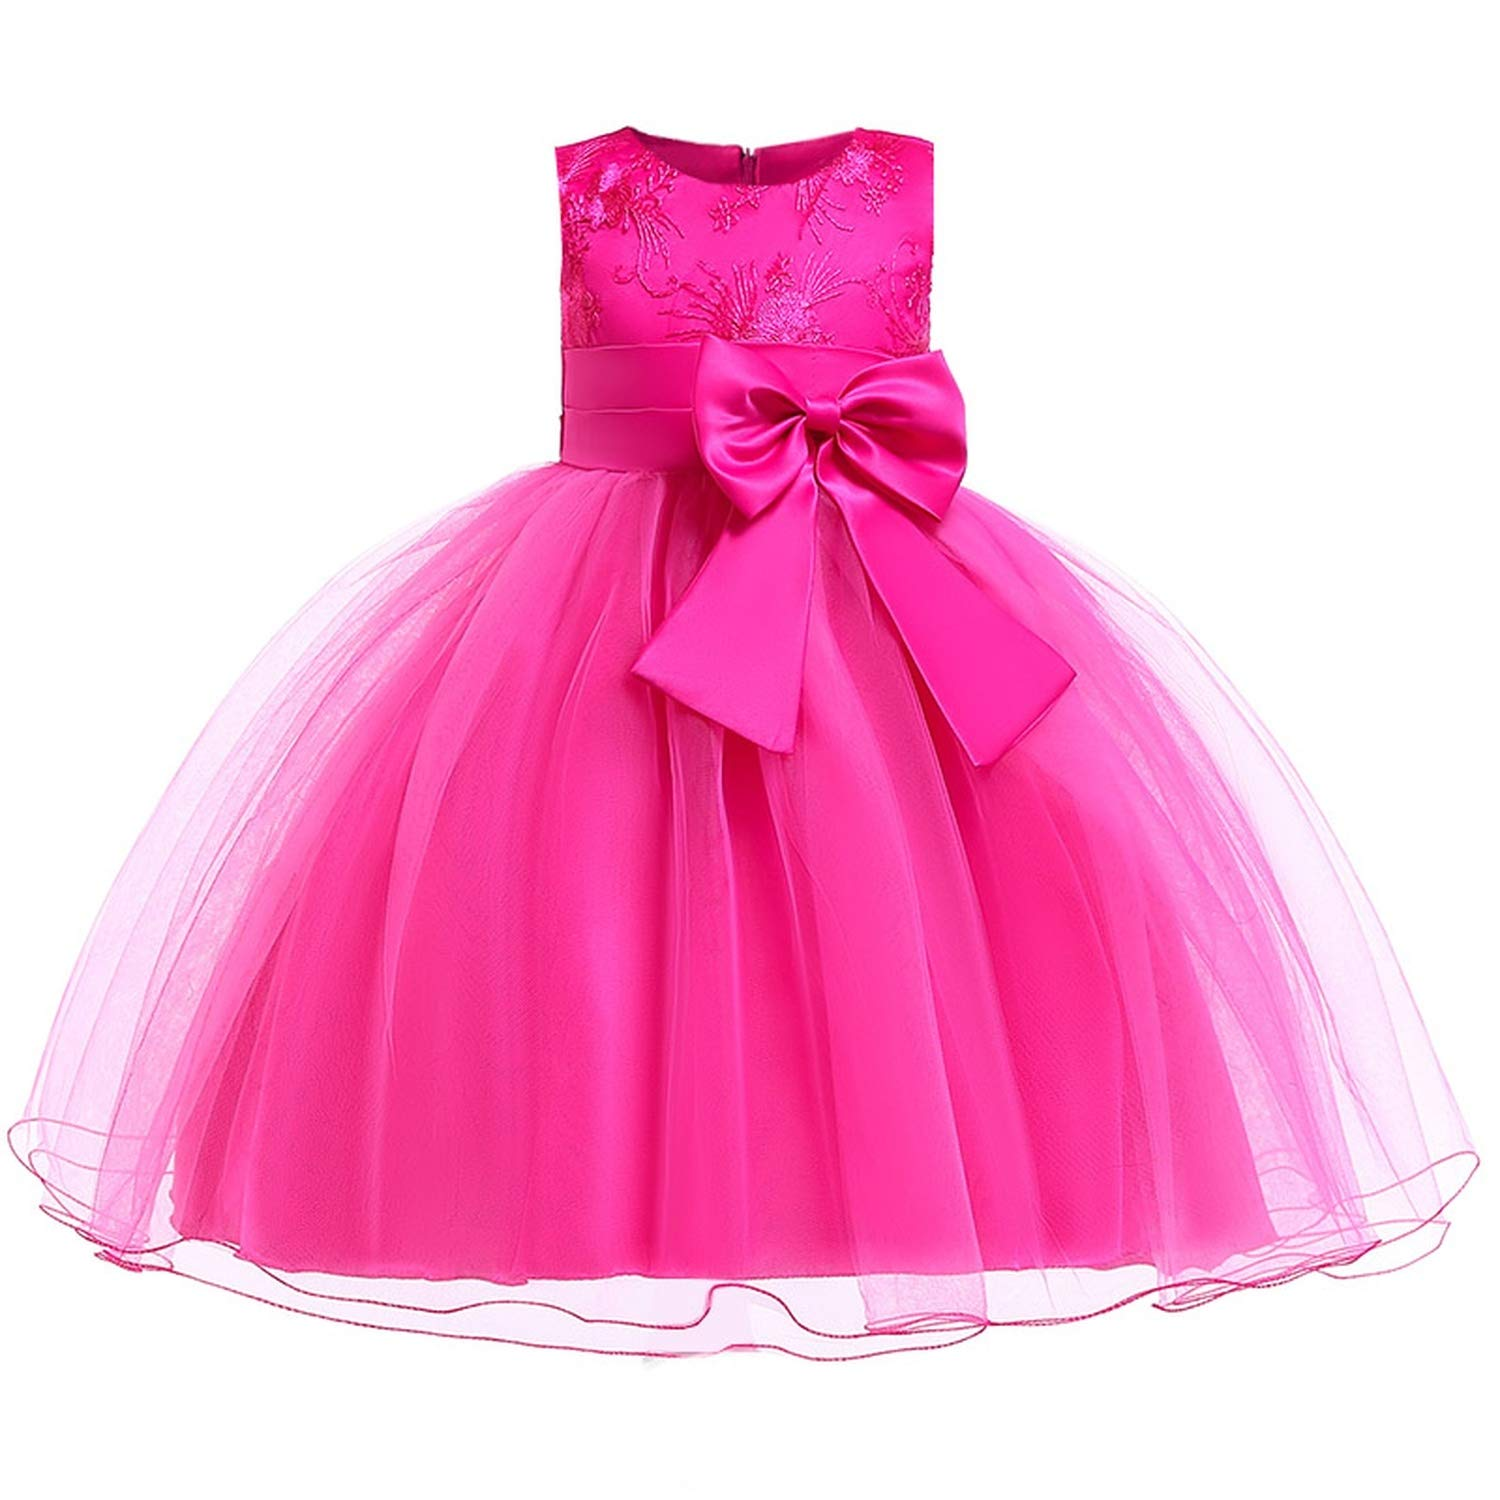 Girls Dress Summer Kids Dresses for Girl Princess Children Baby Tutu 2 3 4 5 6 7 8 9 10 Years,As Picture10,9